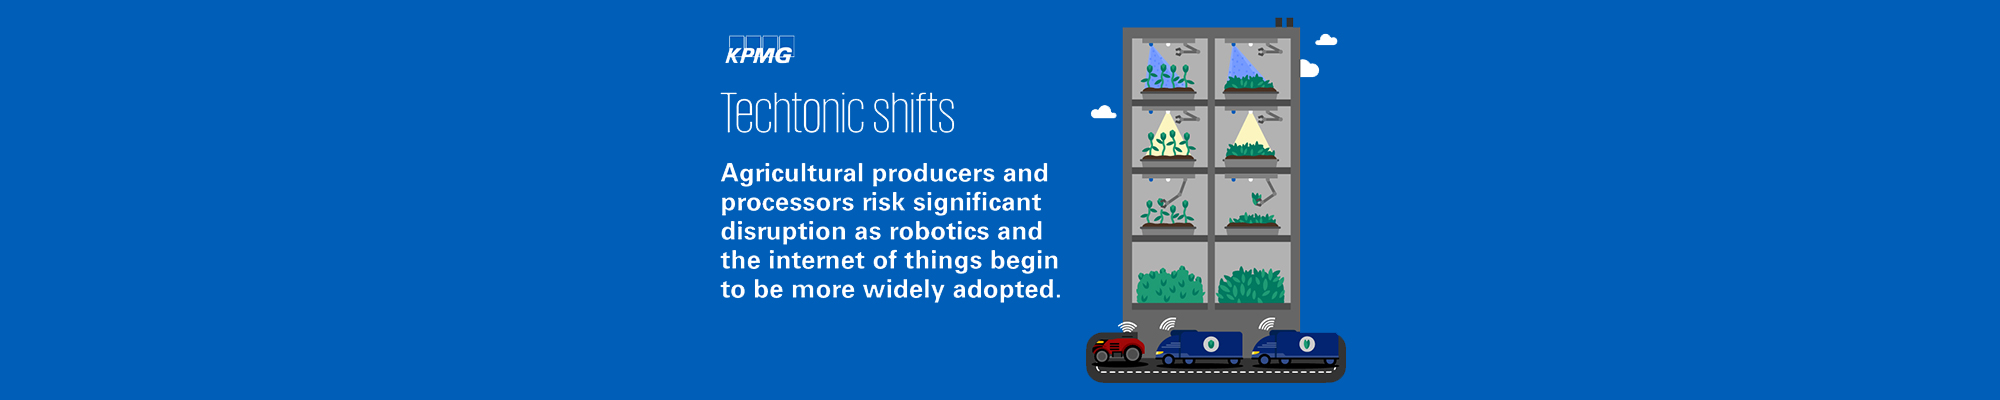 """Image of vertical farm with text """"Agricultural producers and processors risk significant disruption as robotics and the internet of things begin to be more widely adopted"""""""